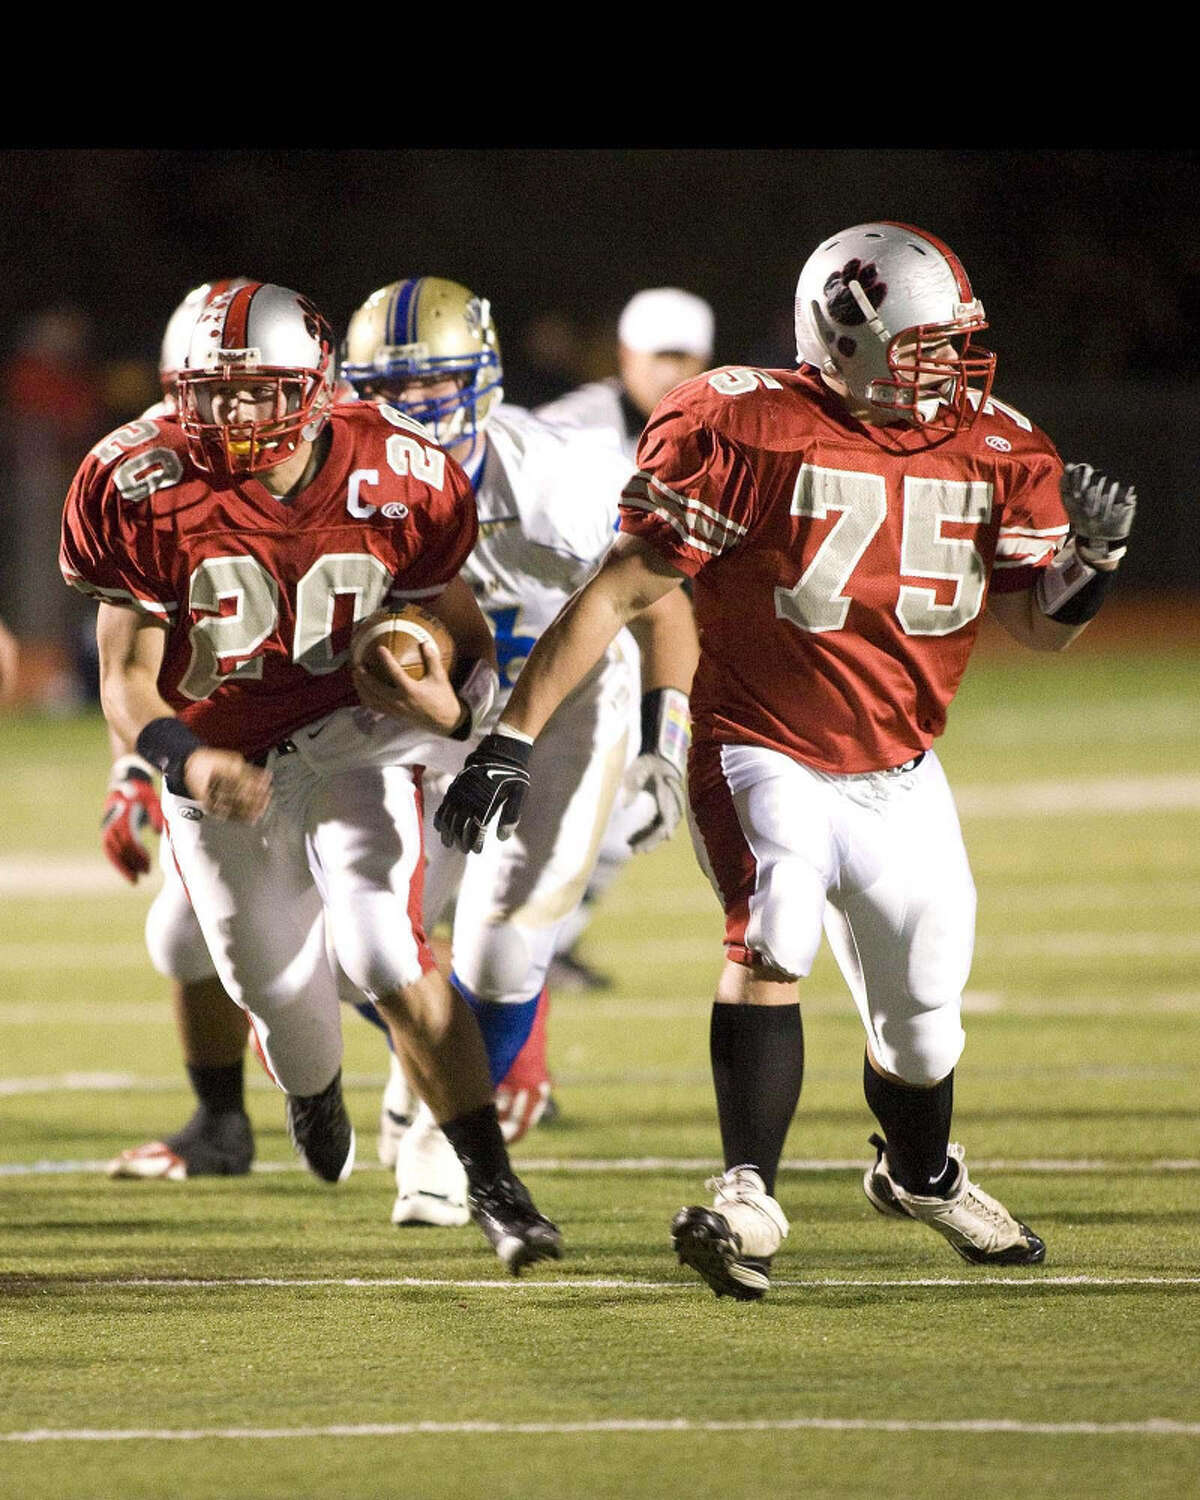 Pomperaug's Ben Crick (left) runs for yardage during a regular-season game against Newtown. Crick, who has run for over 1,500 yards, leads his team against Masuk in the SWC Championship game tonight at Arum Field.